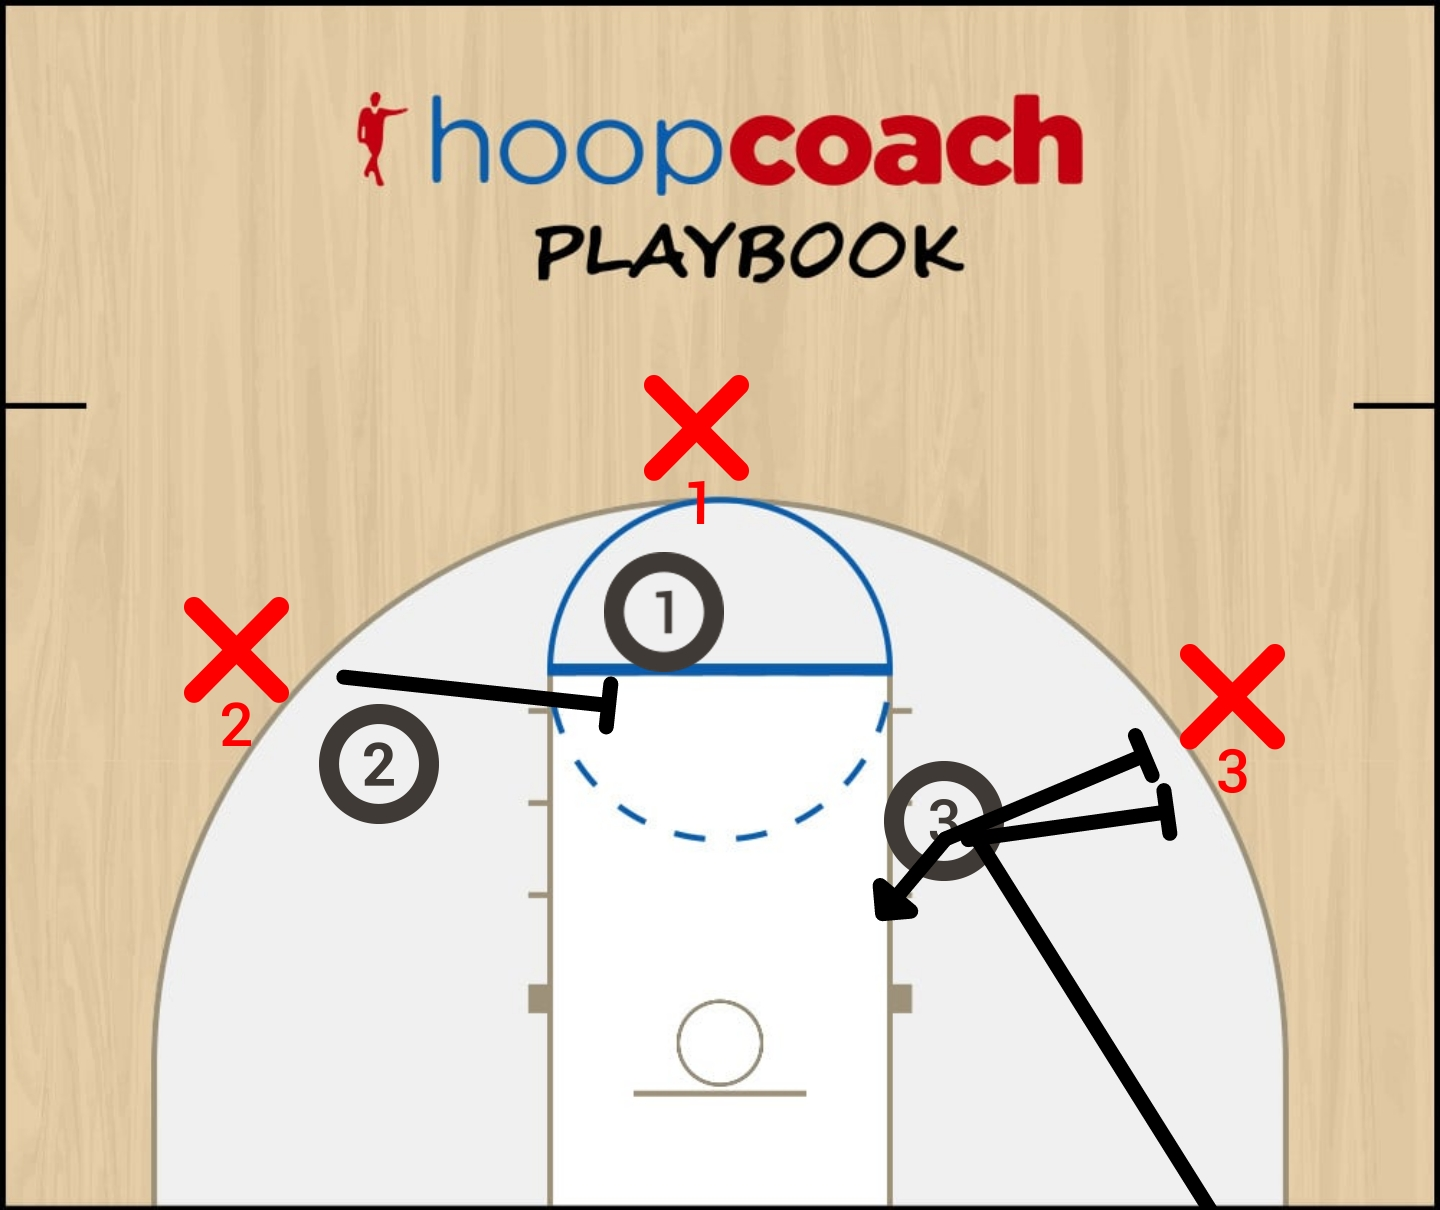 Basketball Play trick pick and roll Man to Man Offense